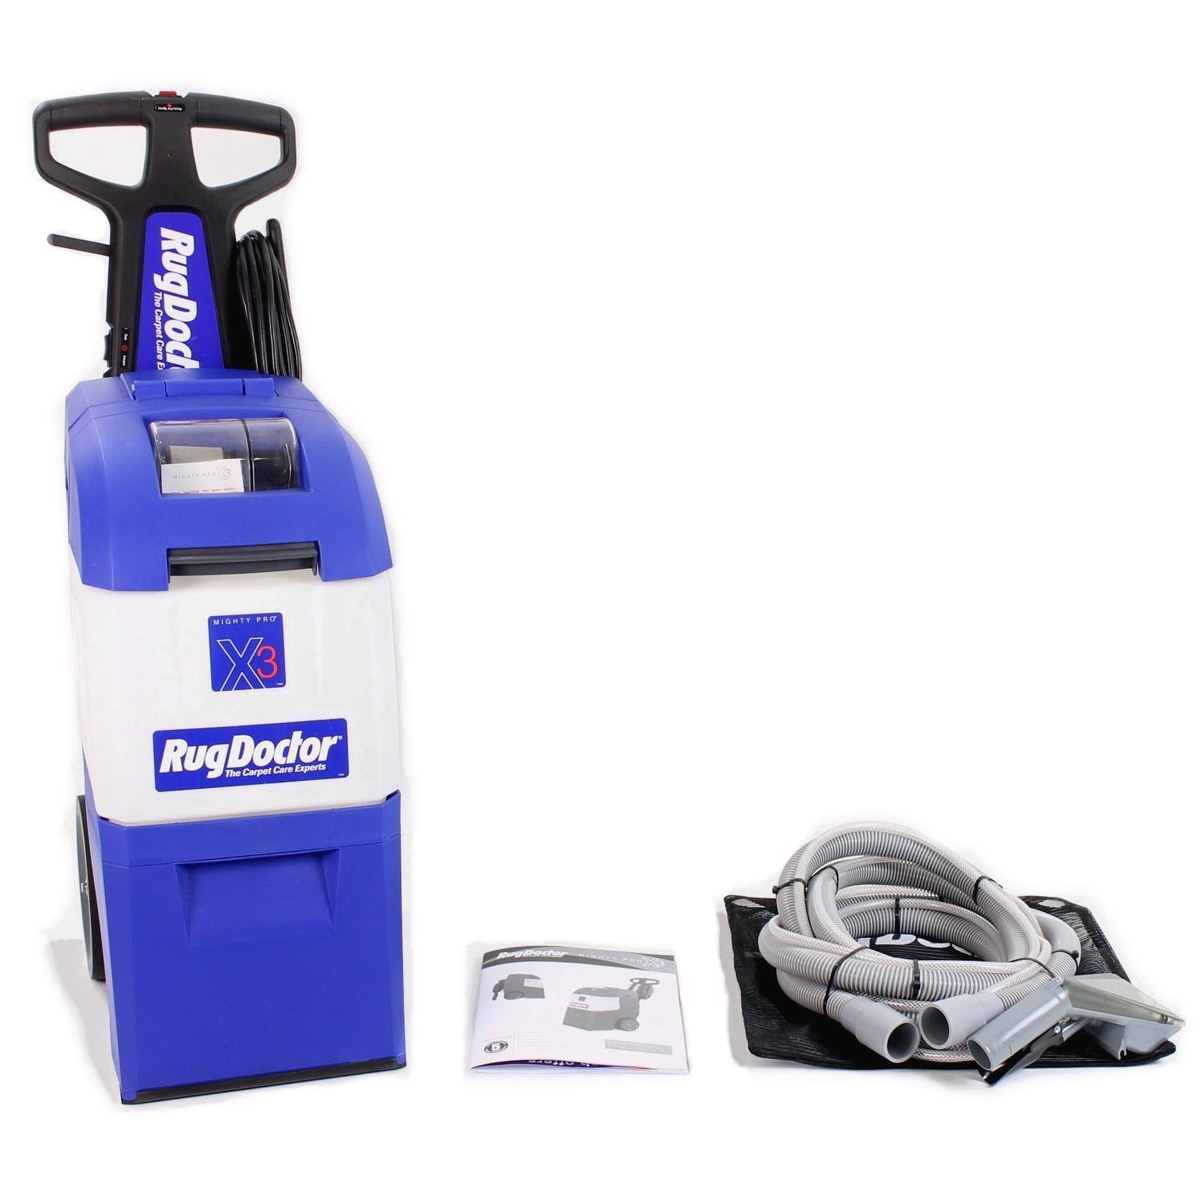 Rug Doctor Might Pro X3 Carpet Upholstery Shampooer and C...